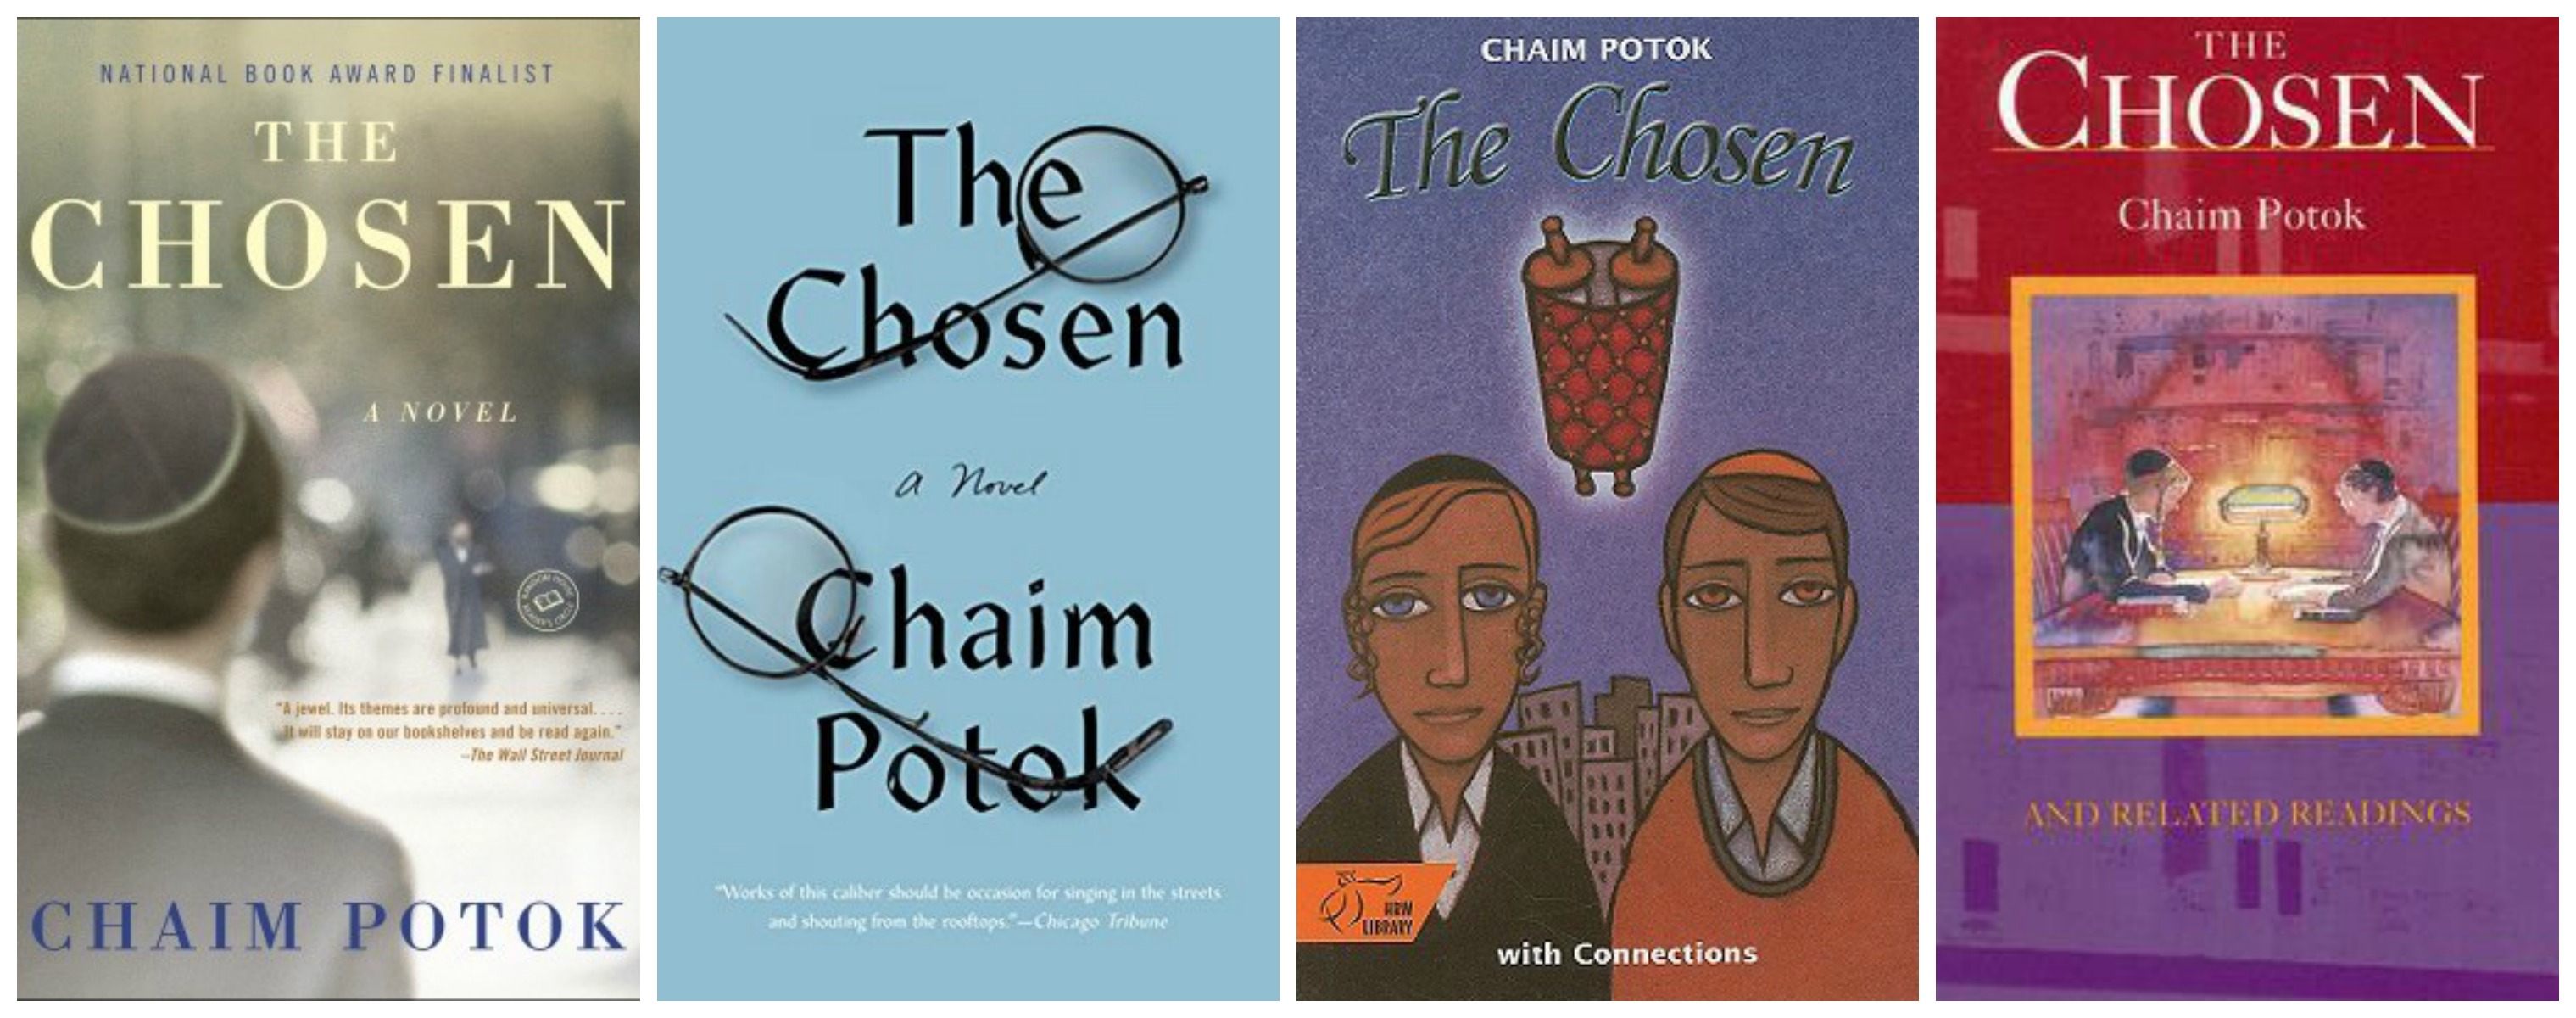 the analysis of individuality in the chosen by chaim potok